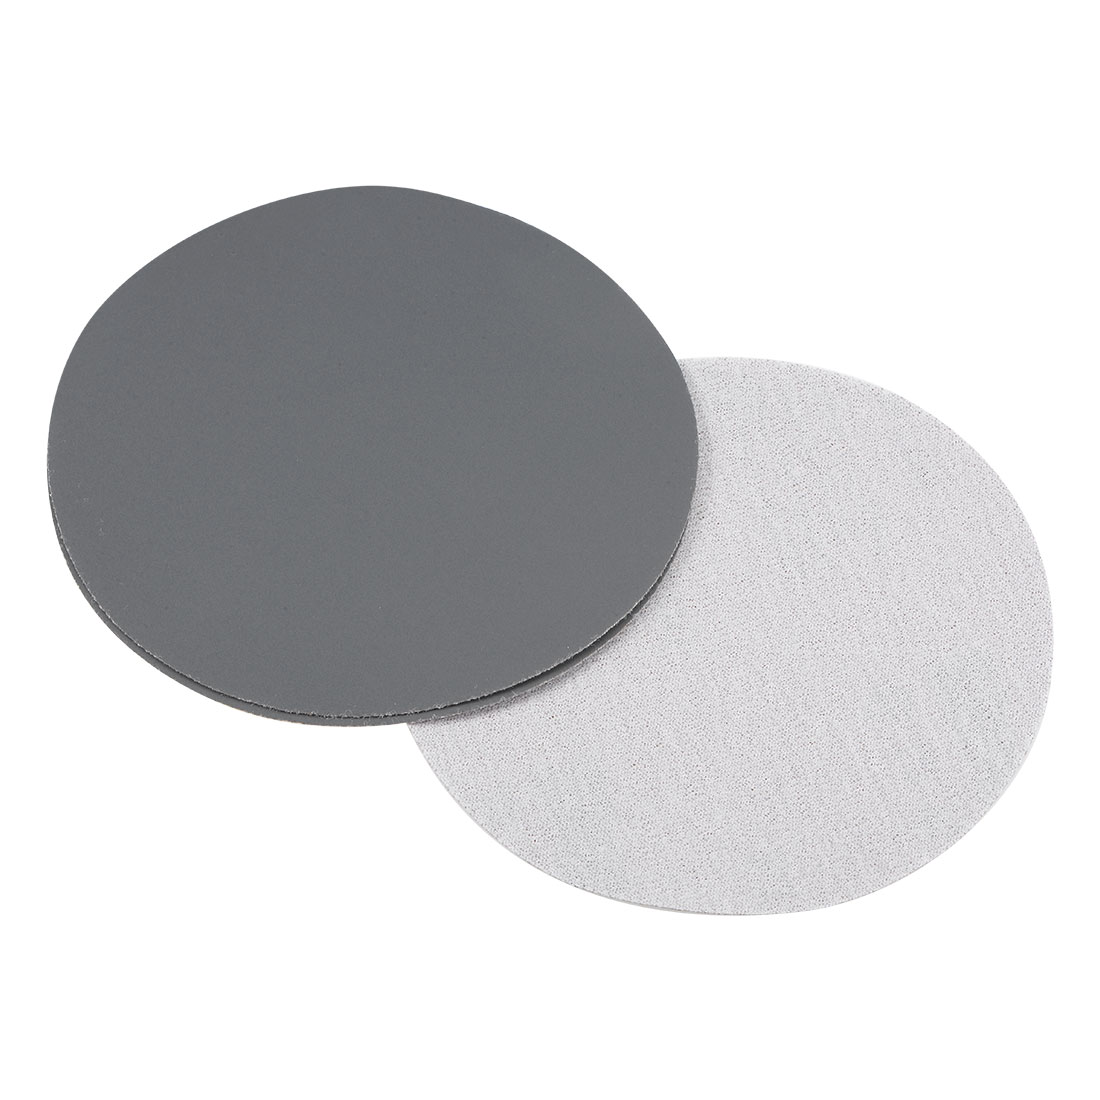 5 inch Wet Dry Discs 2500 Grit Hook and Loop Sanding Disc Silicon Carbide 3pcs